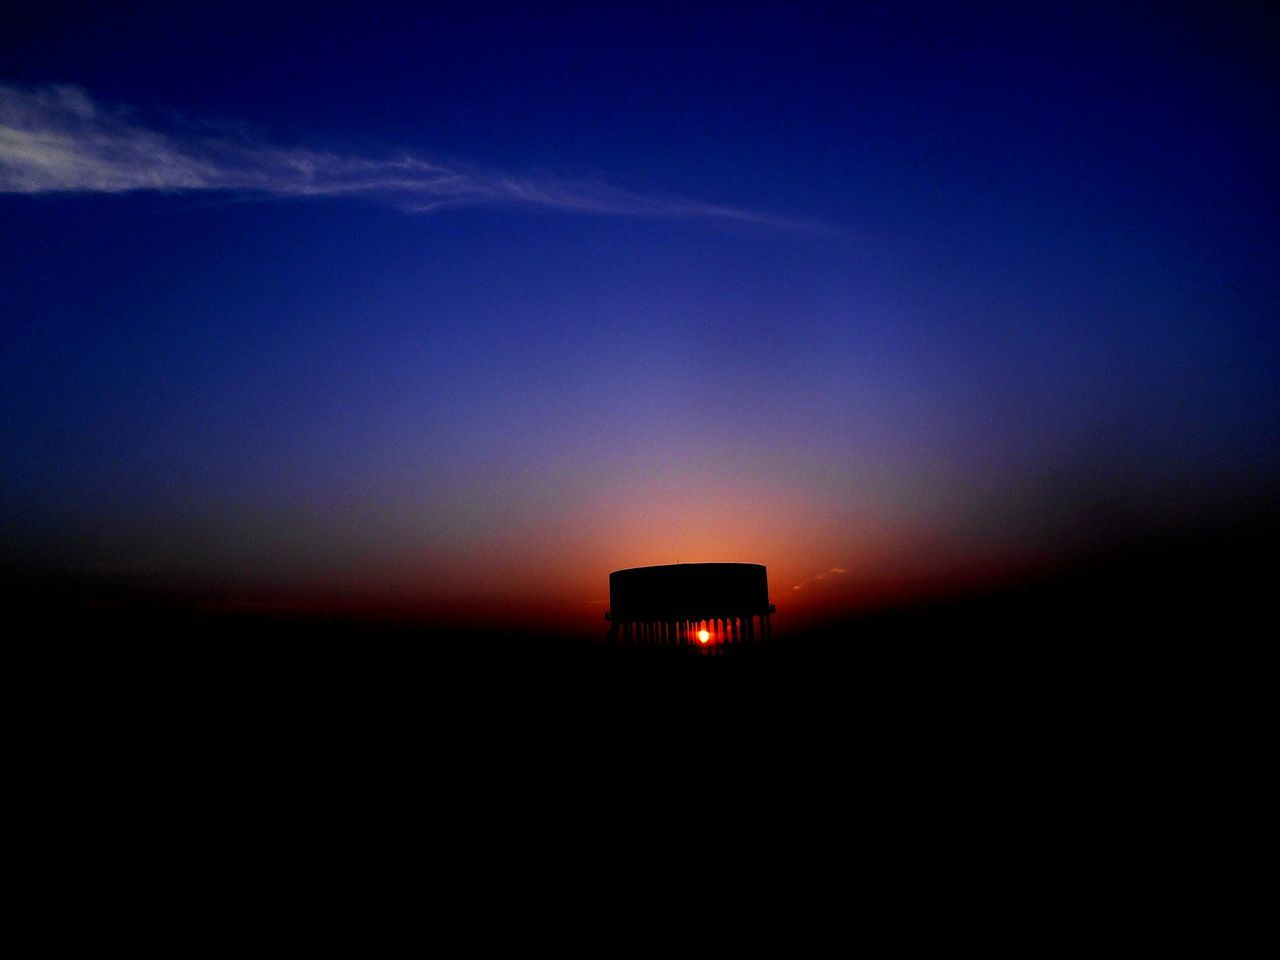 silhouette, dark, sunset, nature, sky, no people, beauty in nature, landscape, outdoors, night